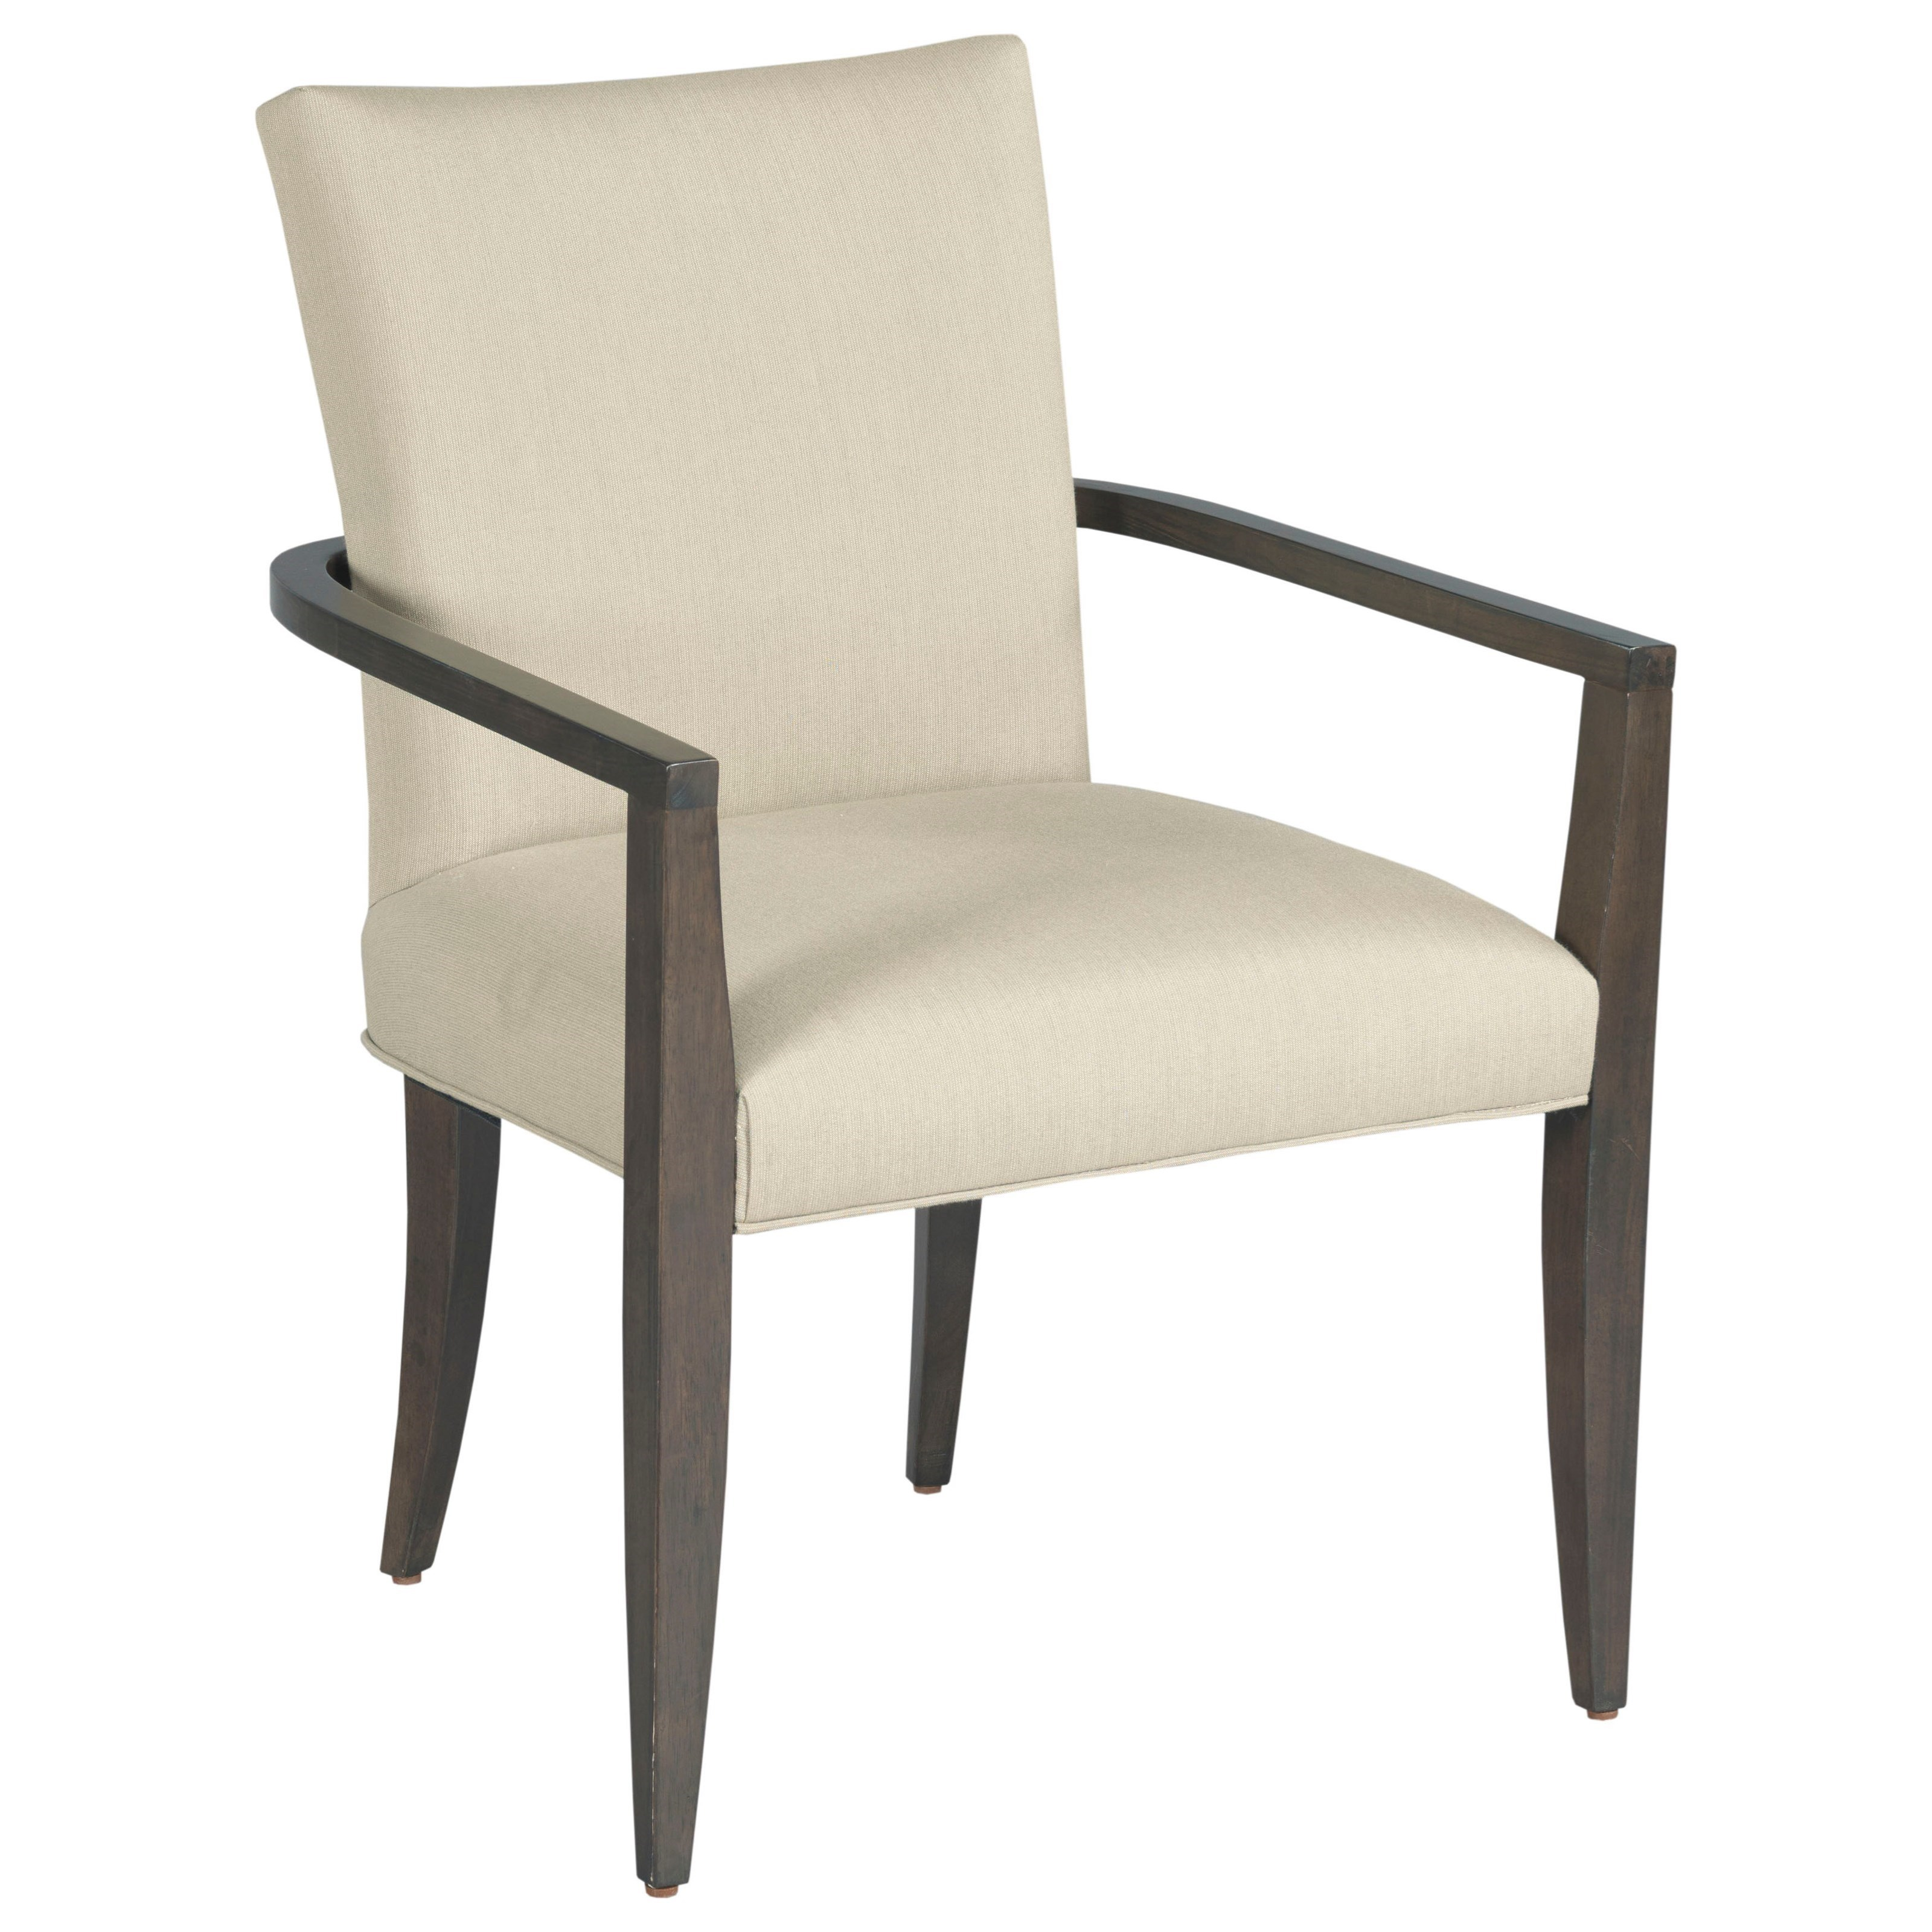 American Drew Ad Modern Organics Benton Dining Arm Chair - Item Number: 600-637